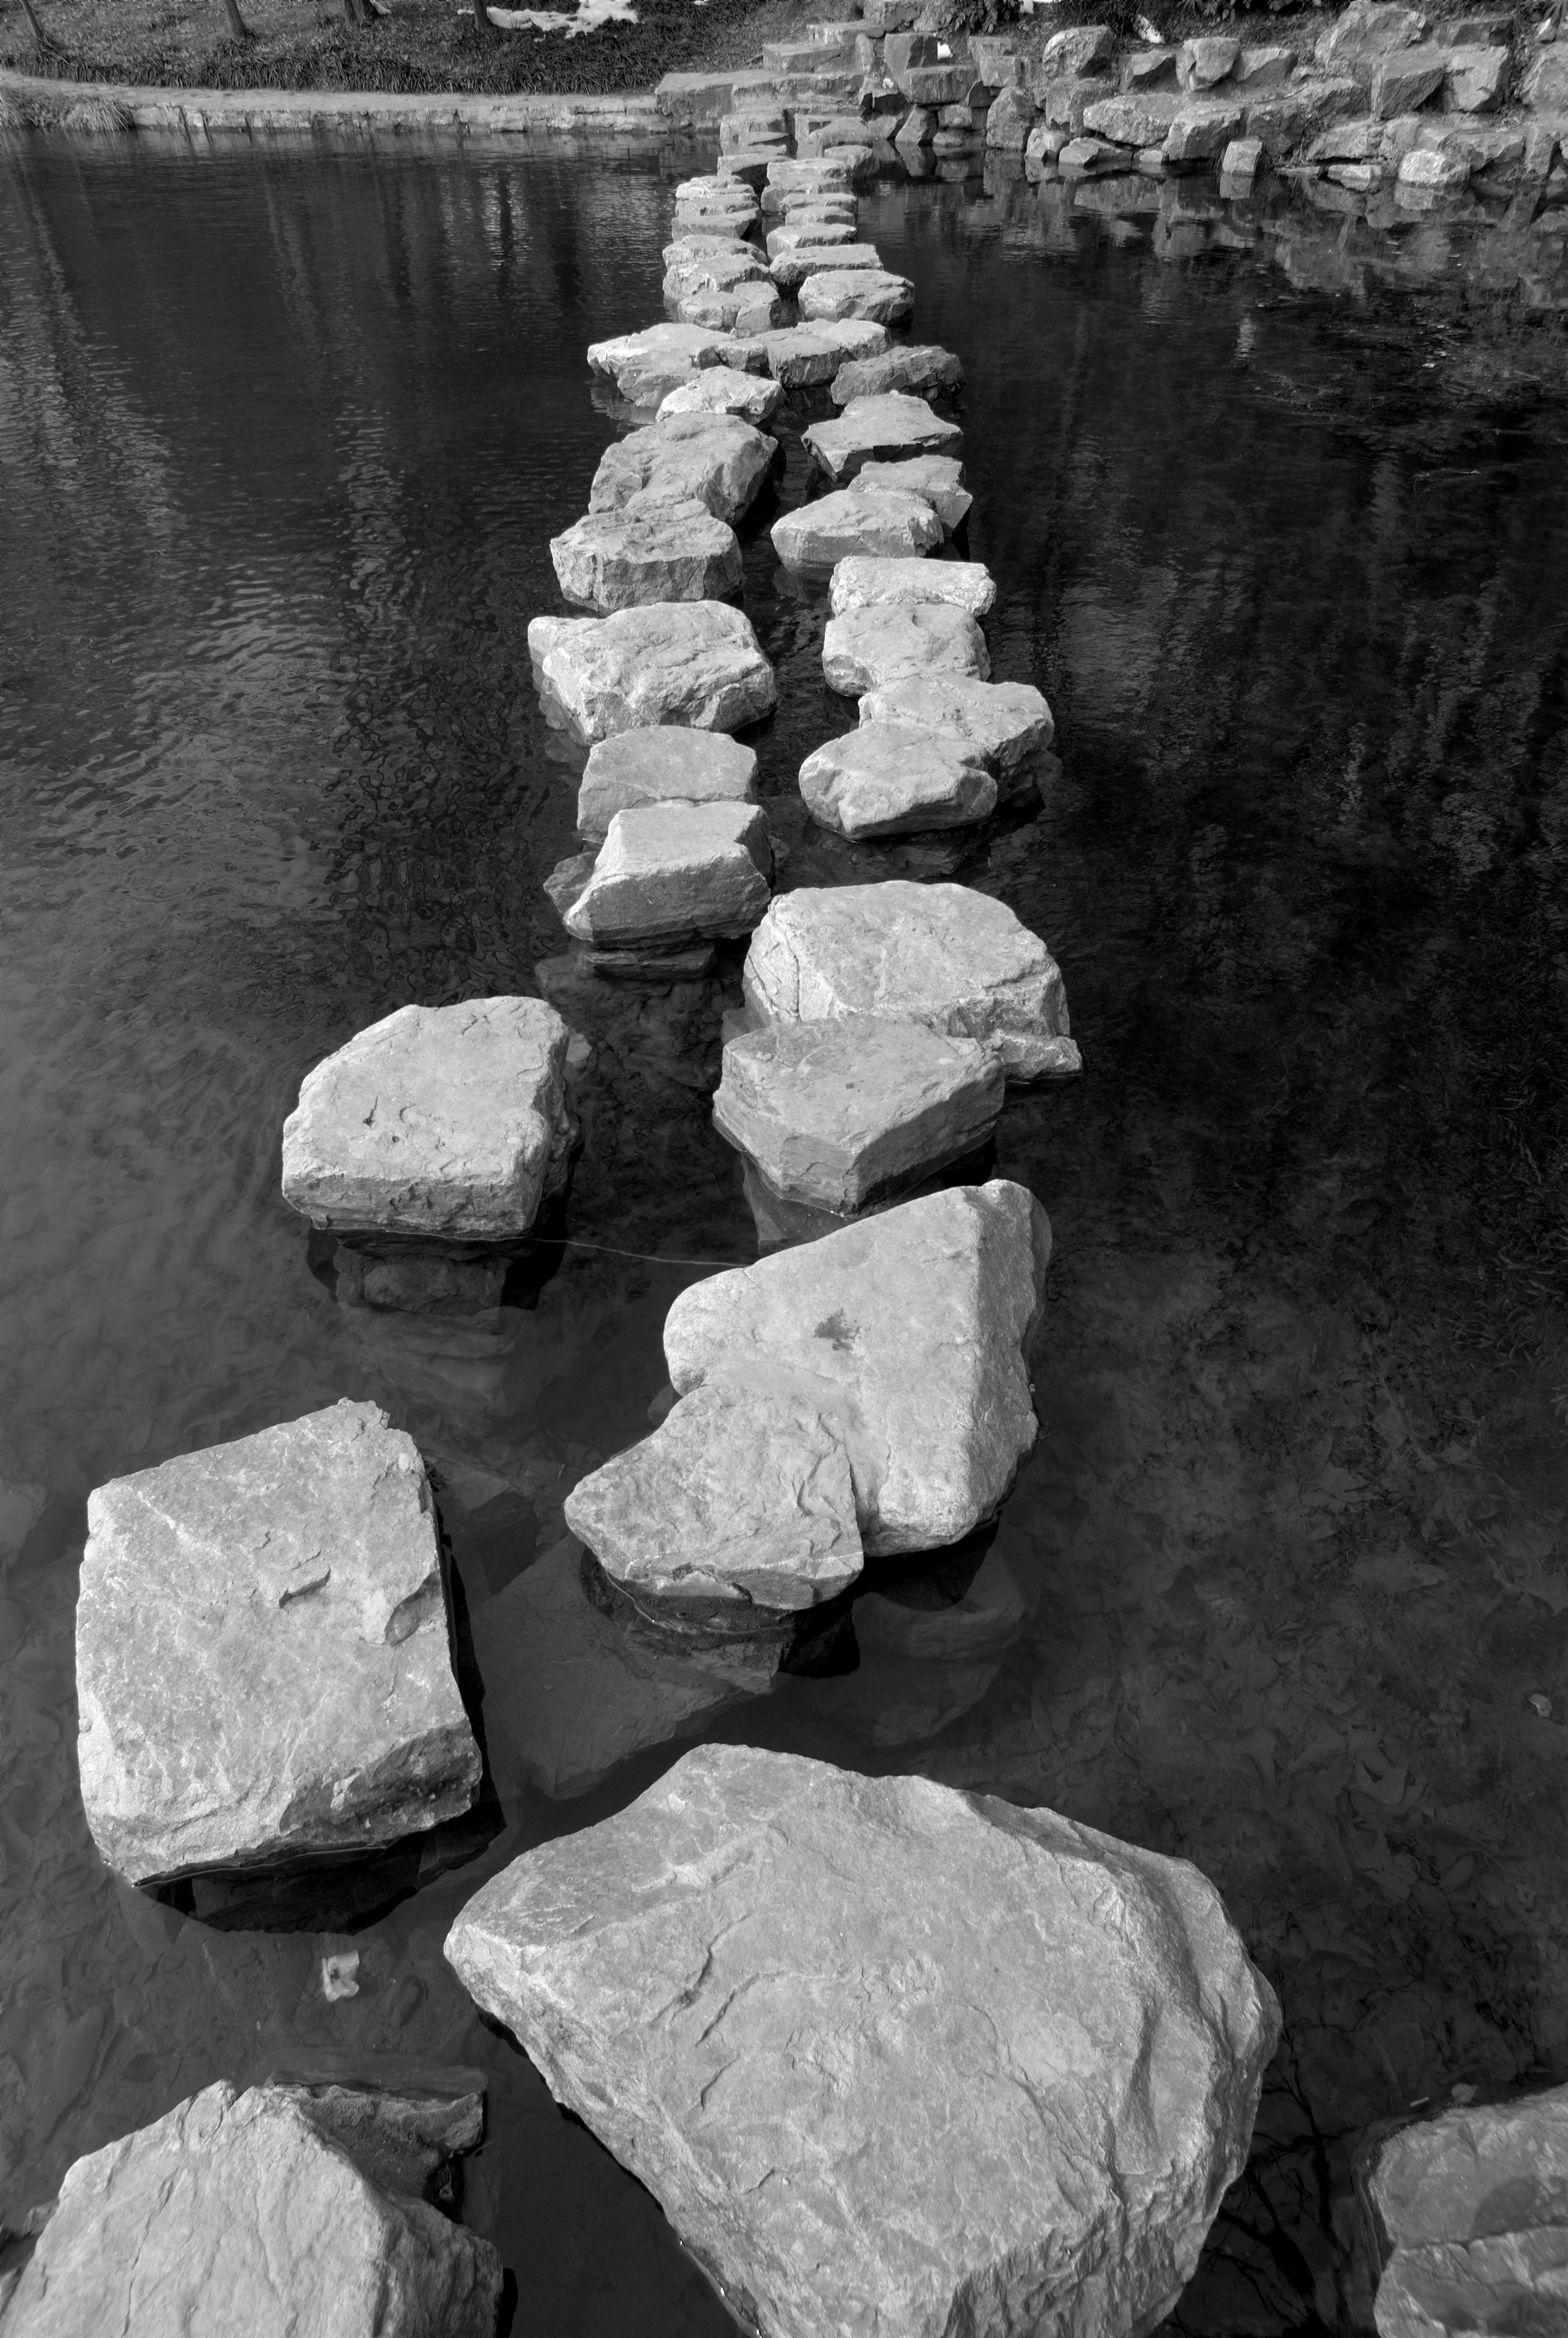 Path of stone on water